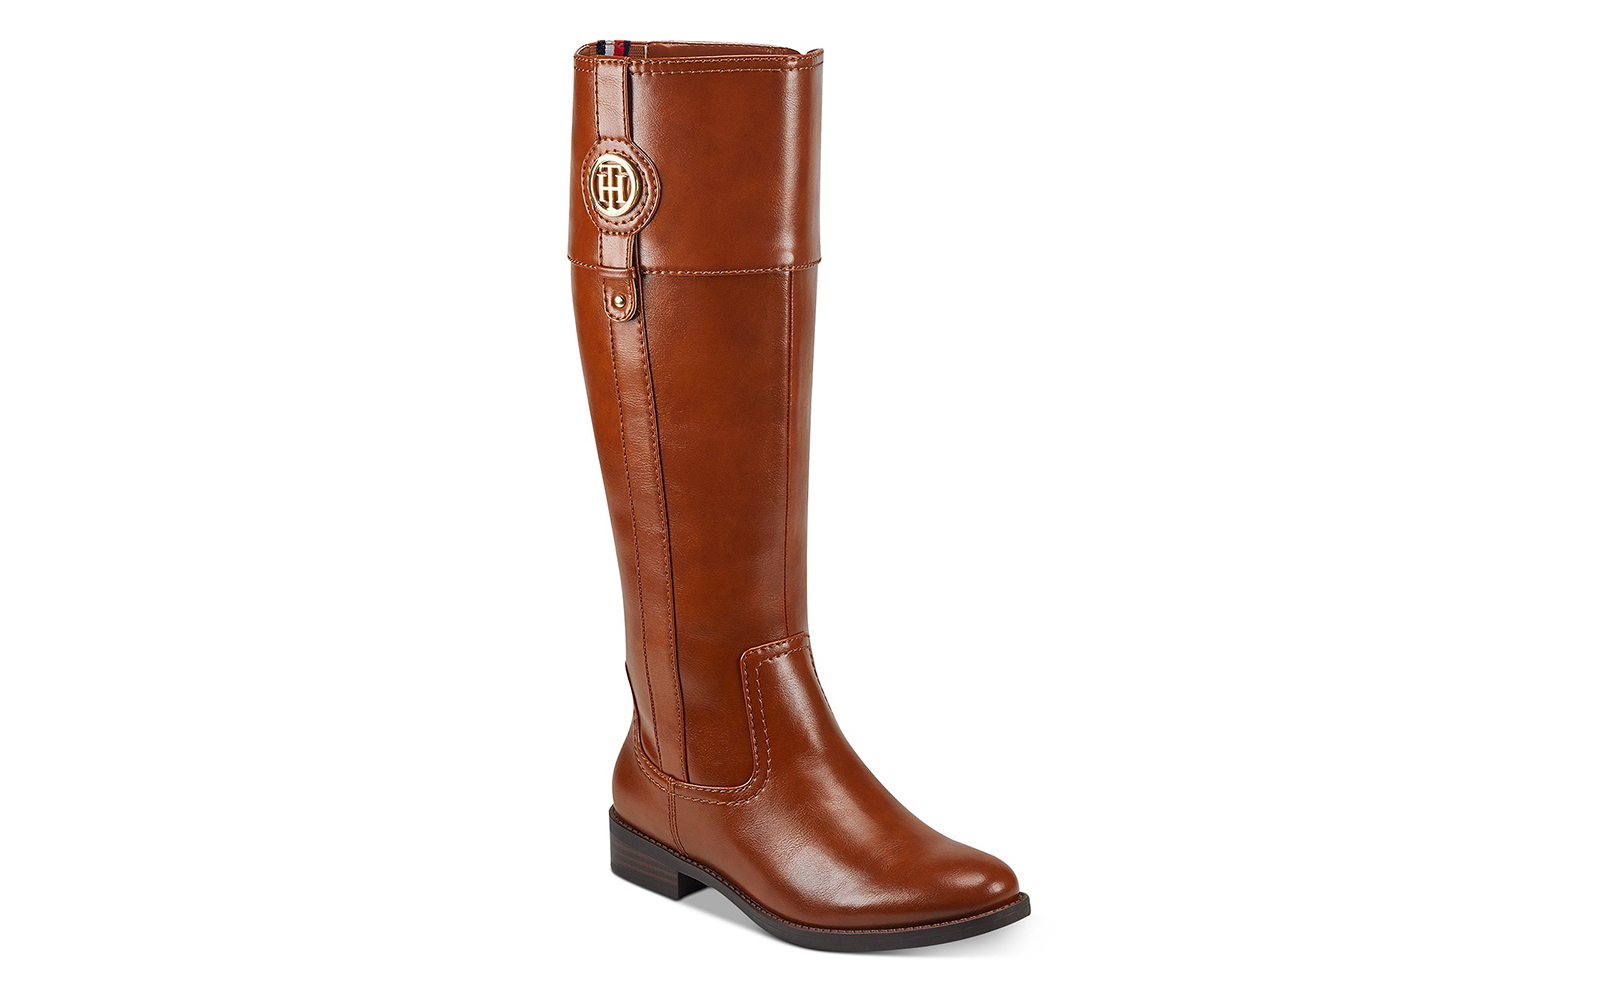 Tommy Hilfiger Women's Imina Riding Boots